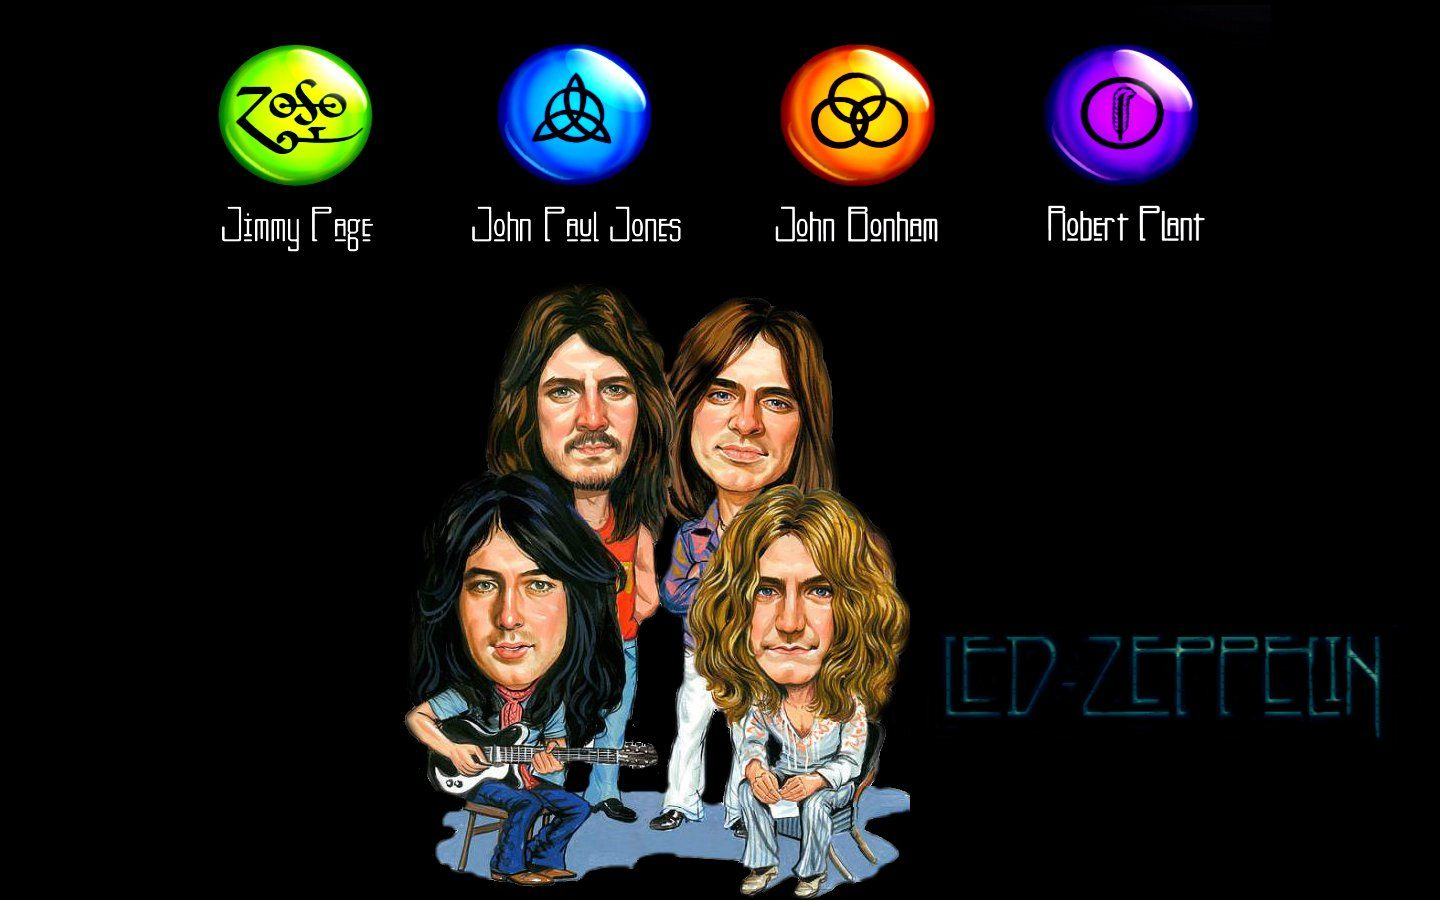 Led Zeppelin Wallpapers On Wallpaperdog